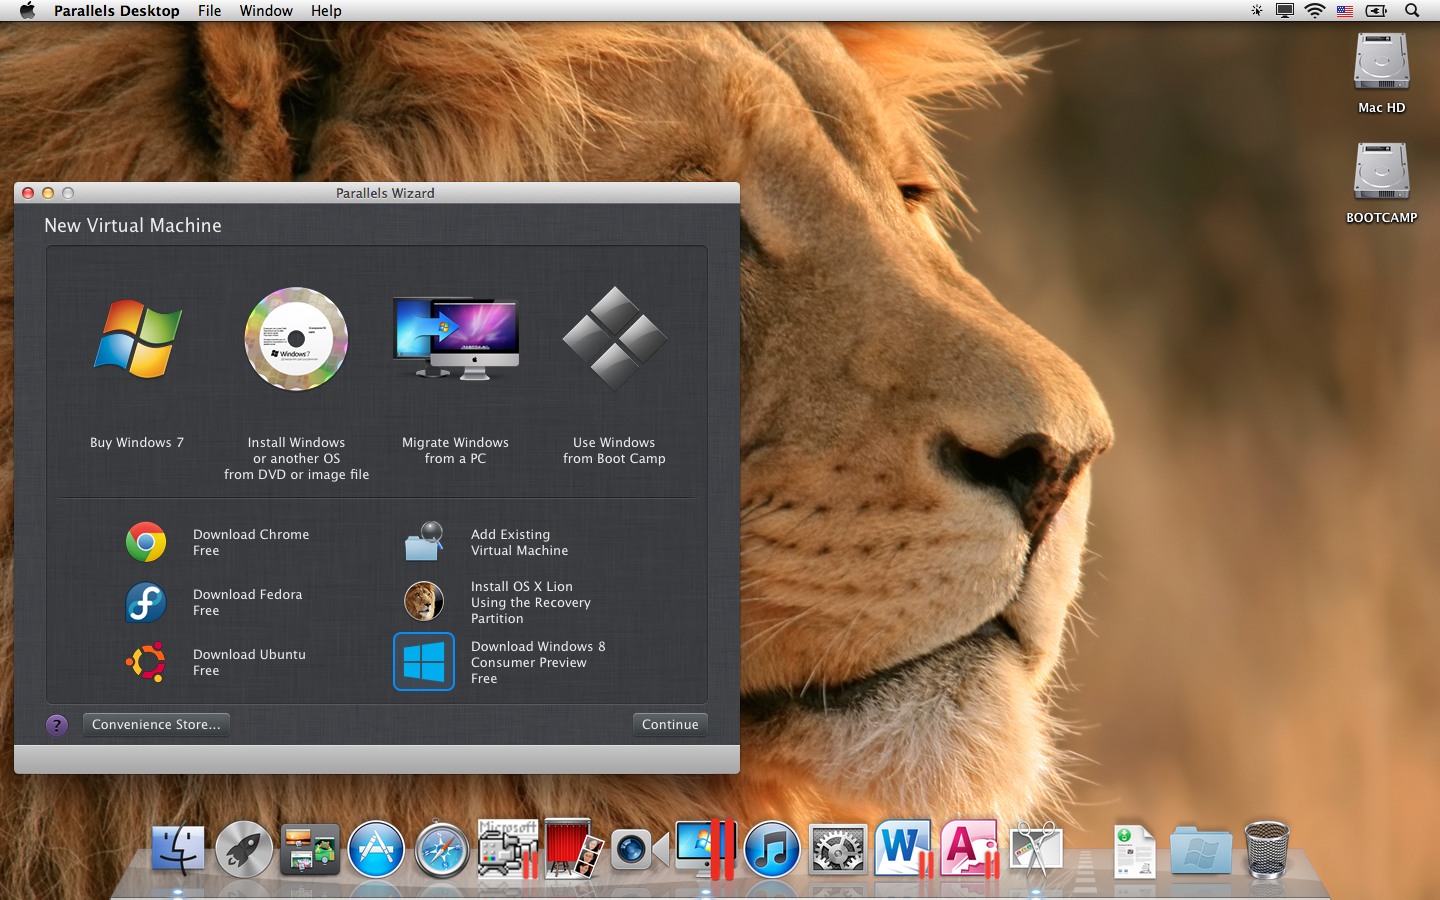 Download free mac os x lion transformation pack for windows 7.